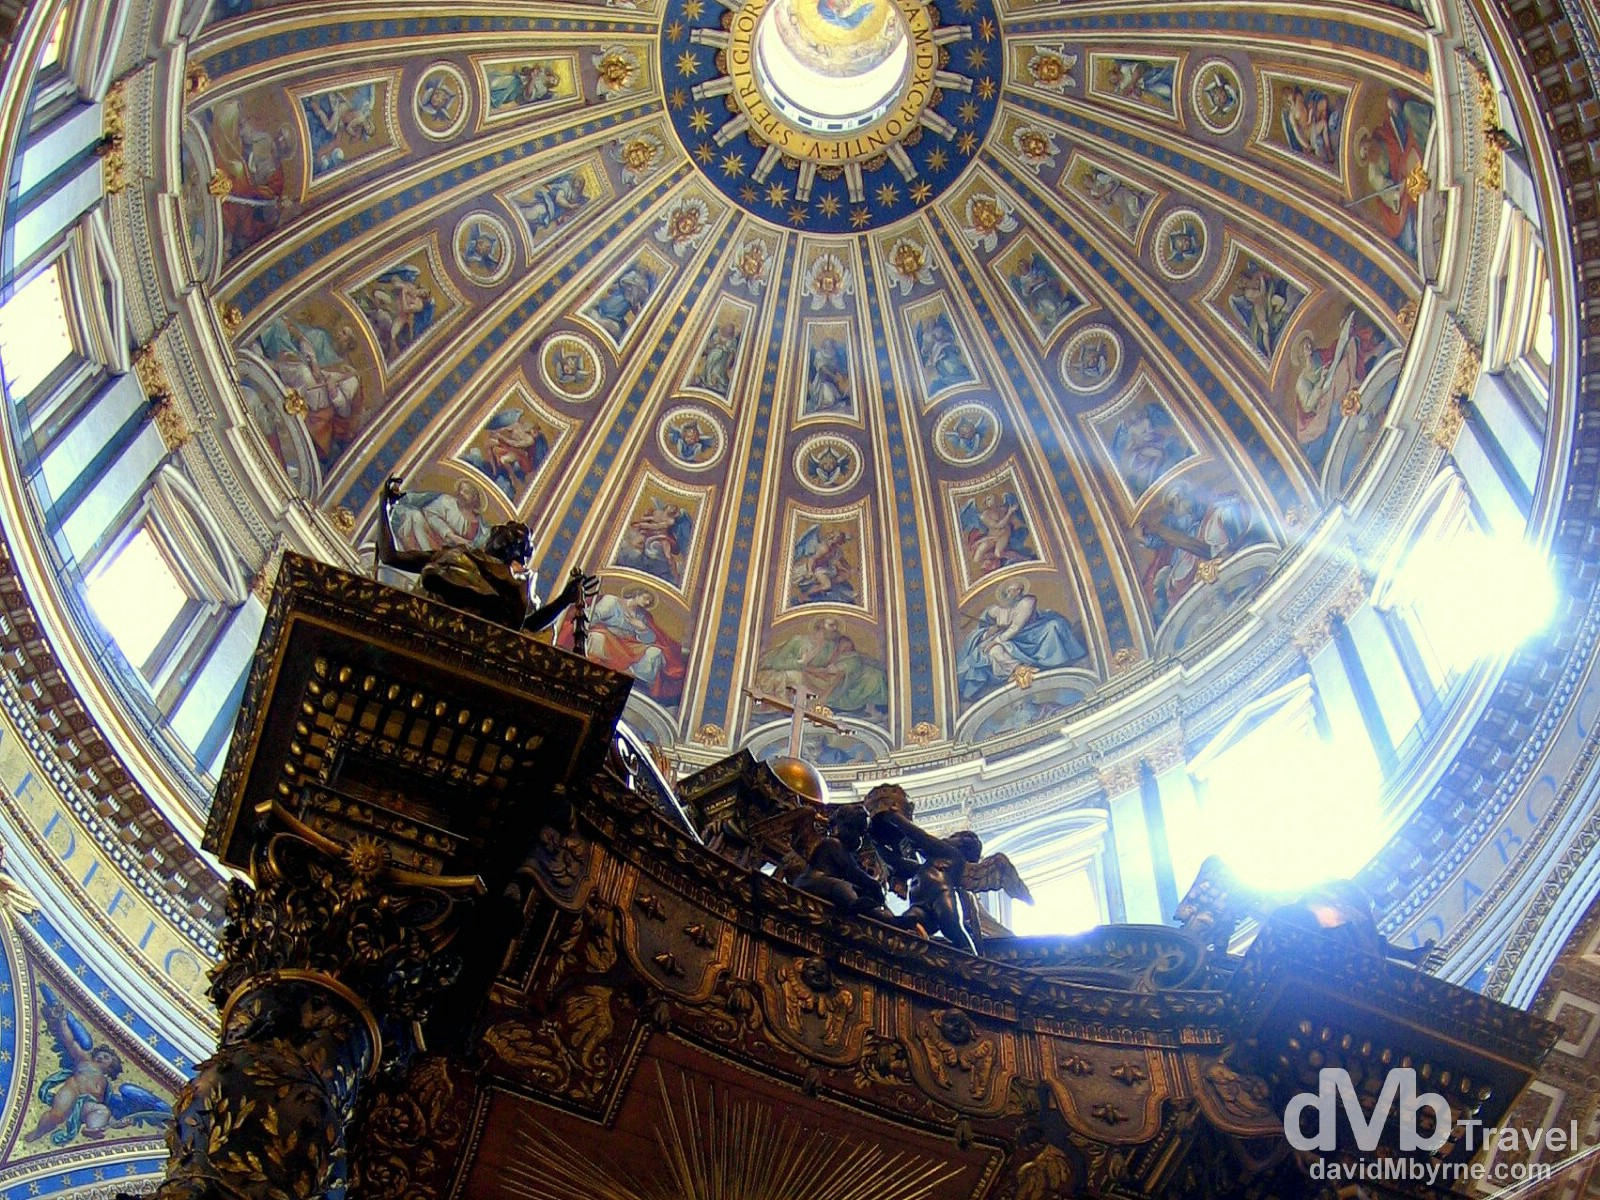 The dome of St. Peter. St. Peter's Basilica, Vatican City. September 1st, 2007.